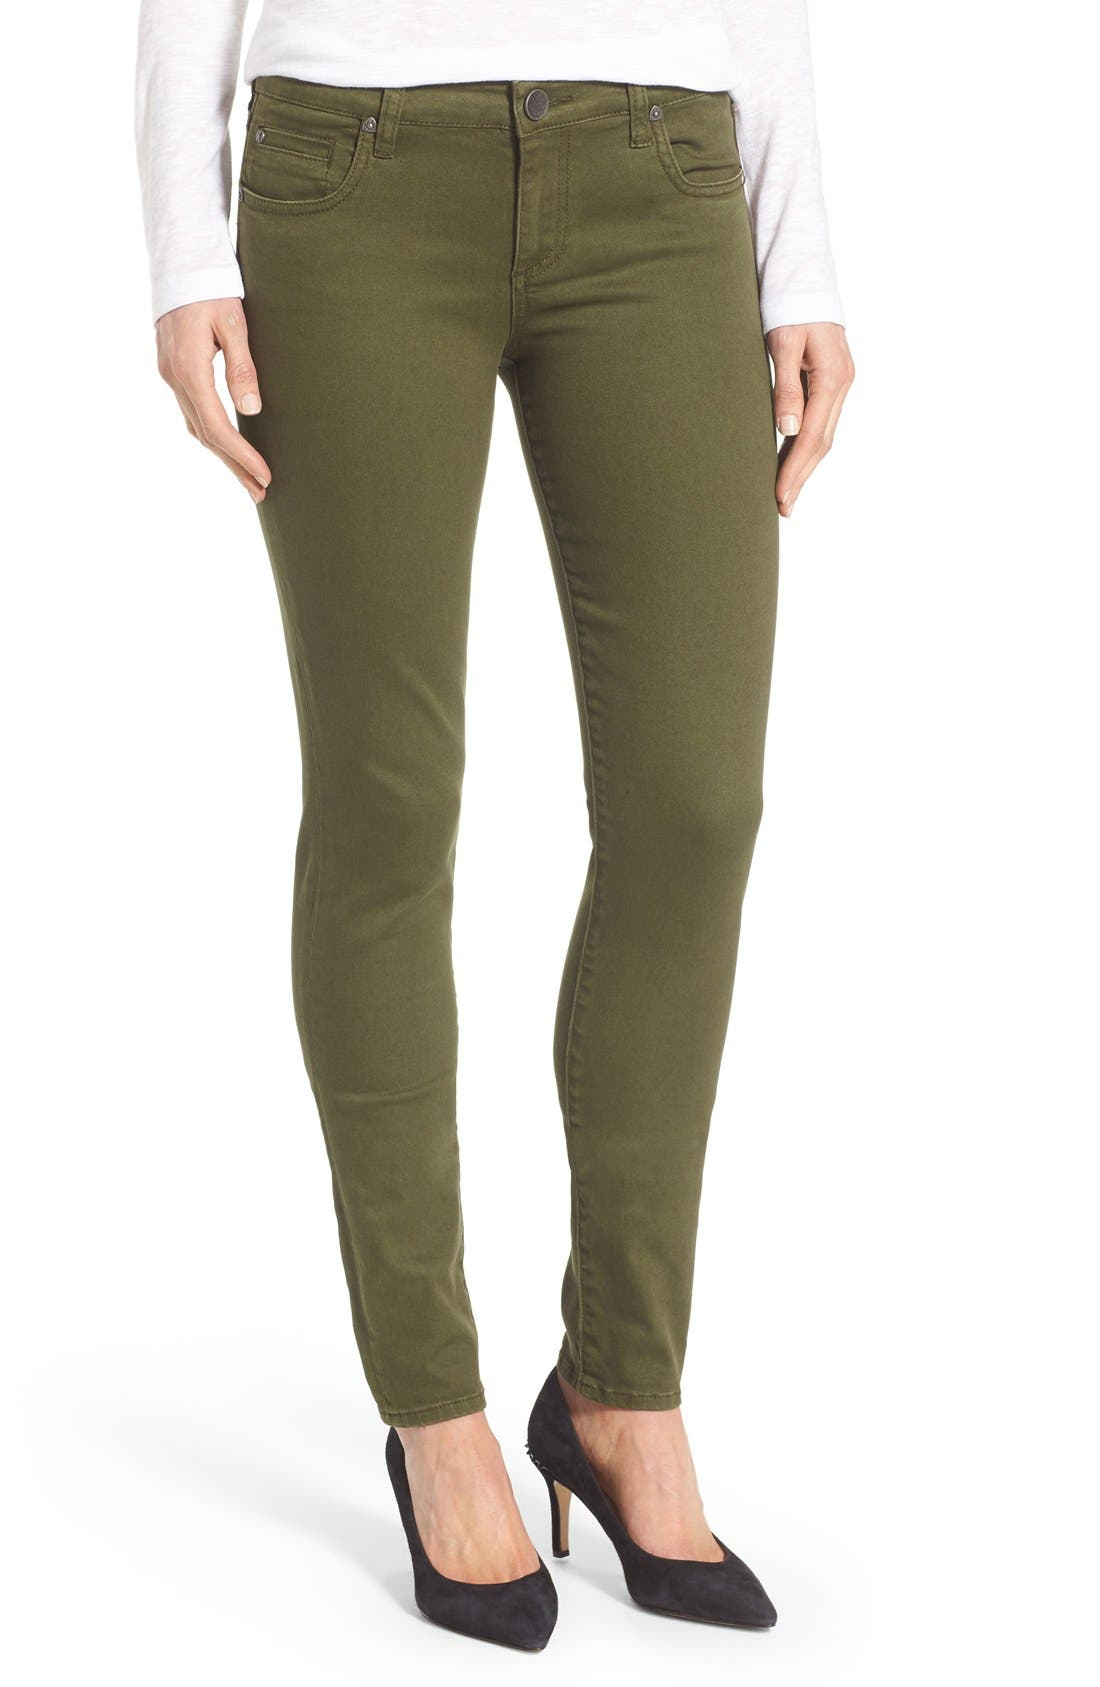 Alternate Image 1 Selected - KUT from the Kloth Diana Colored Denim Skinny Jeans